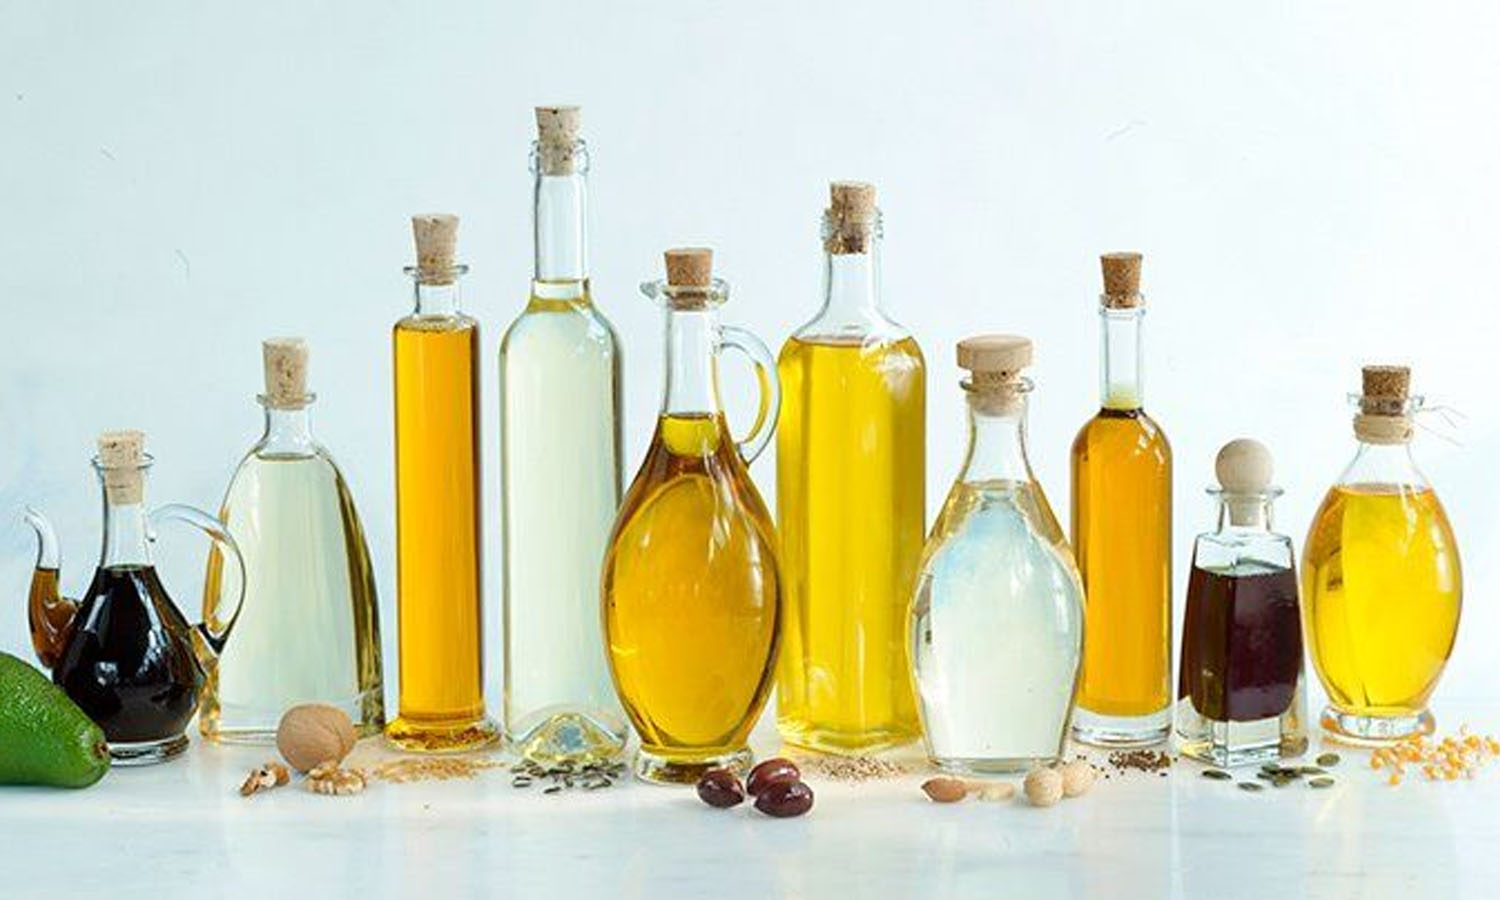 Plant Oil Good for Our Health?